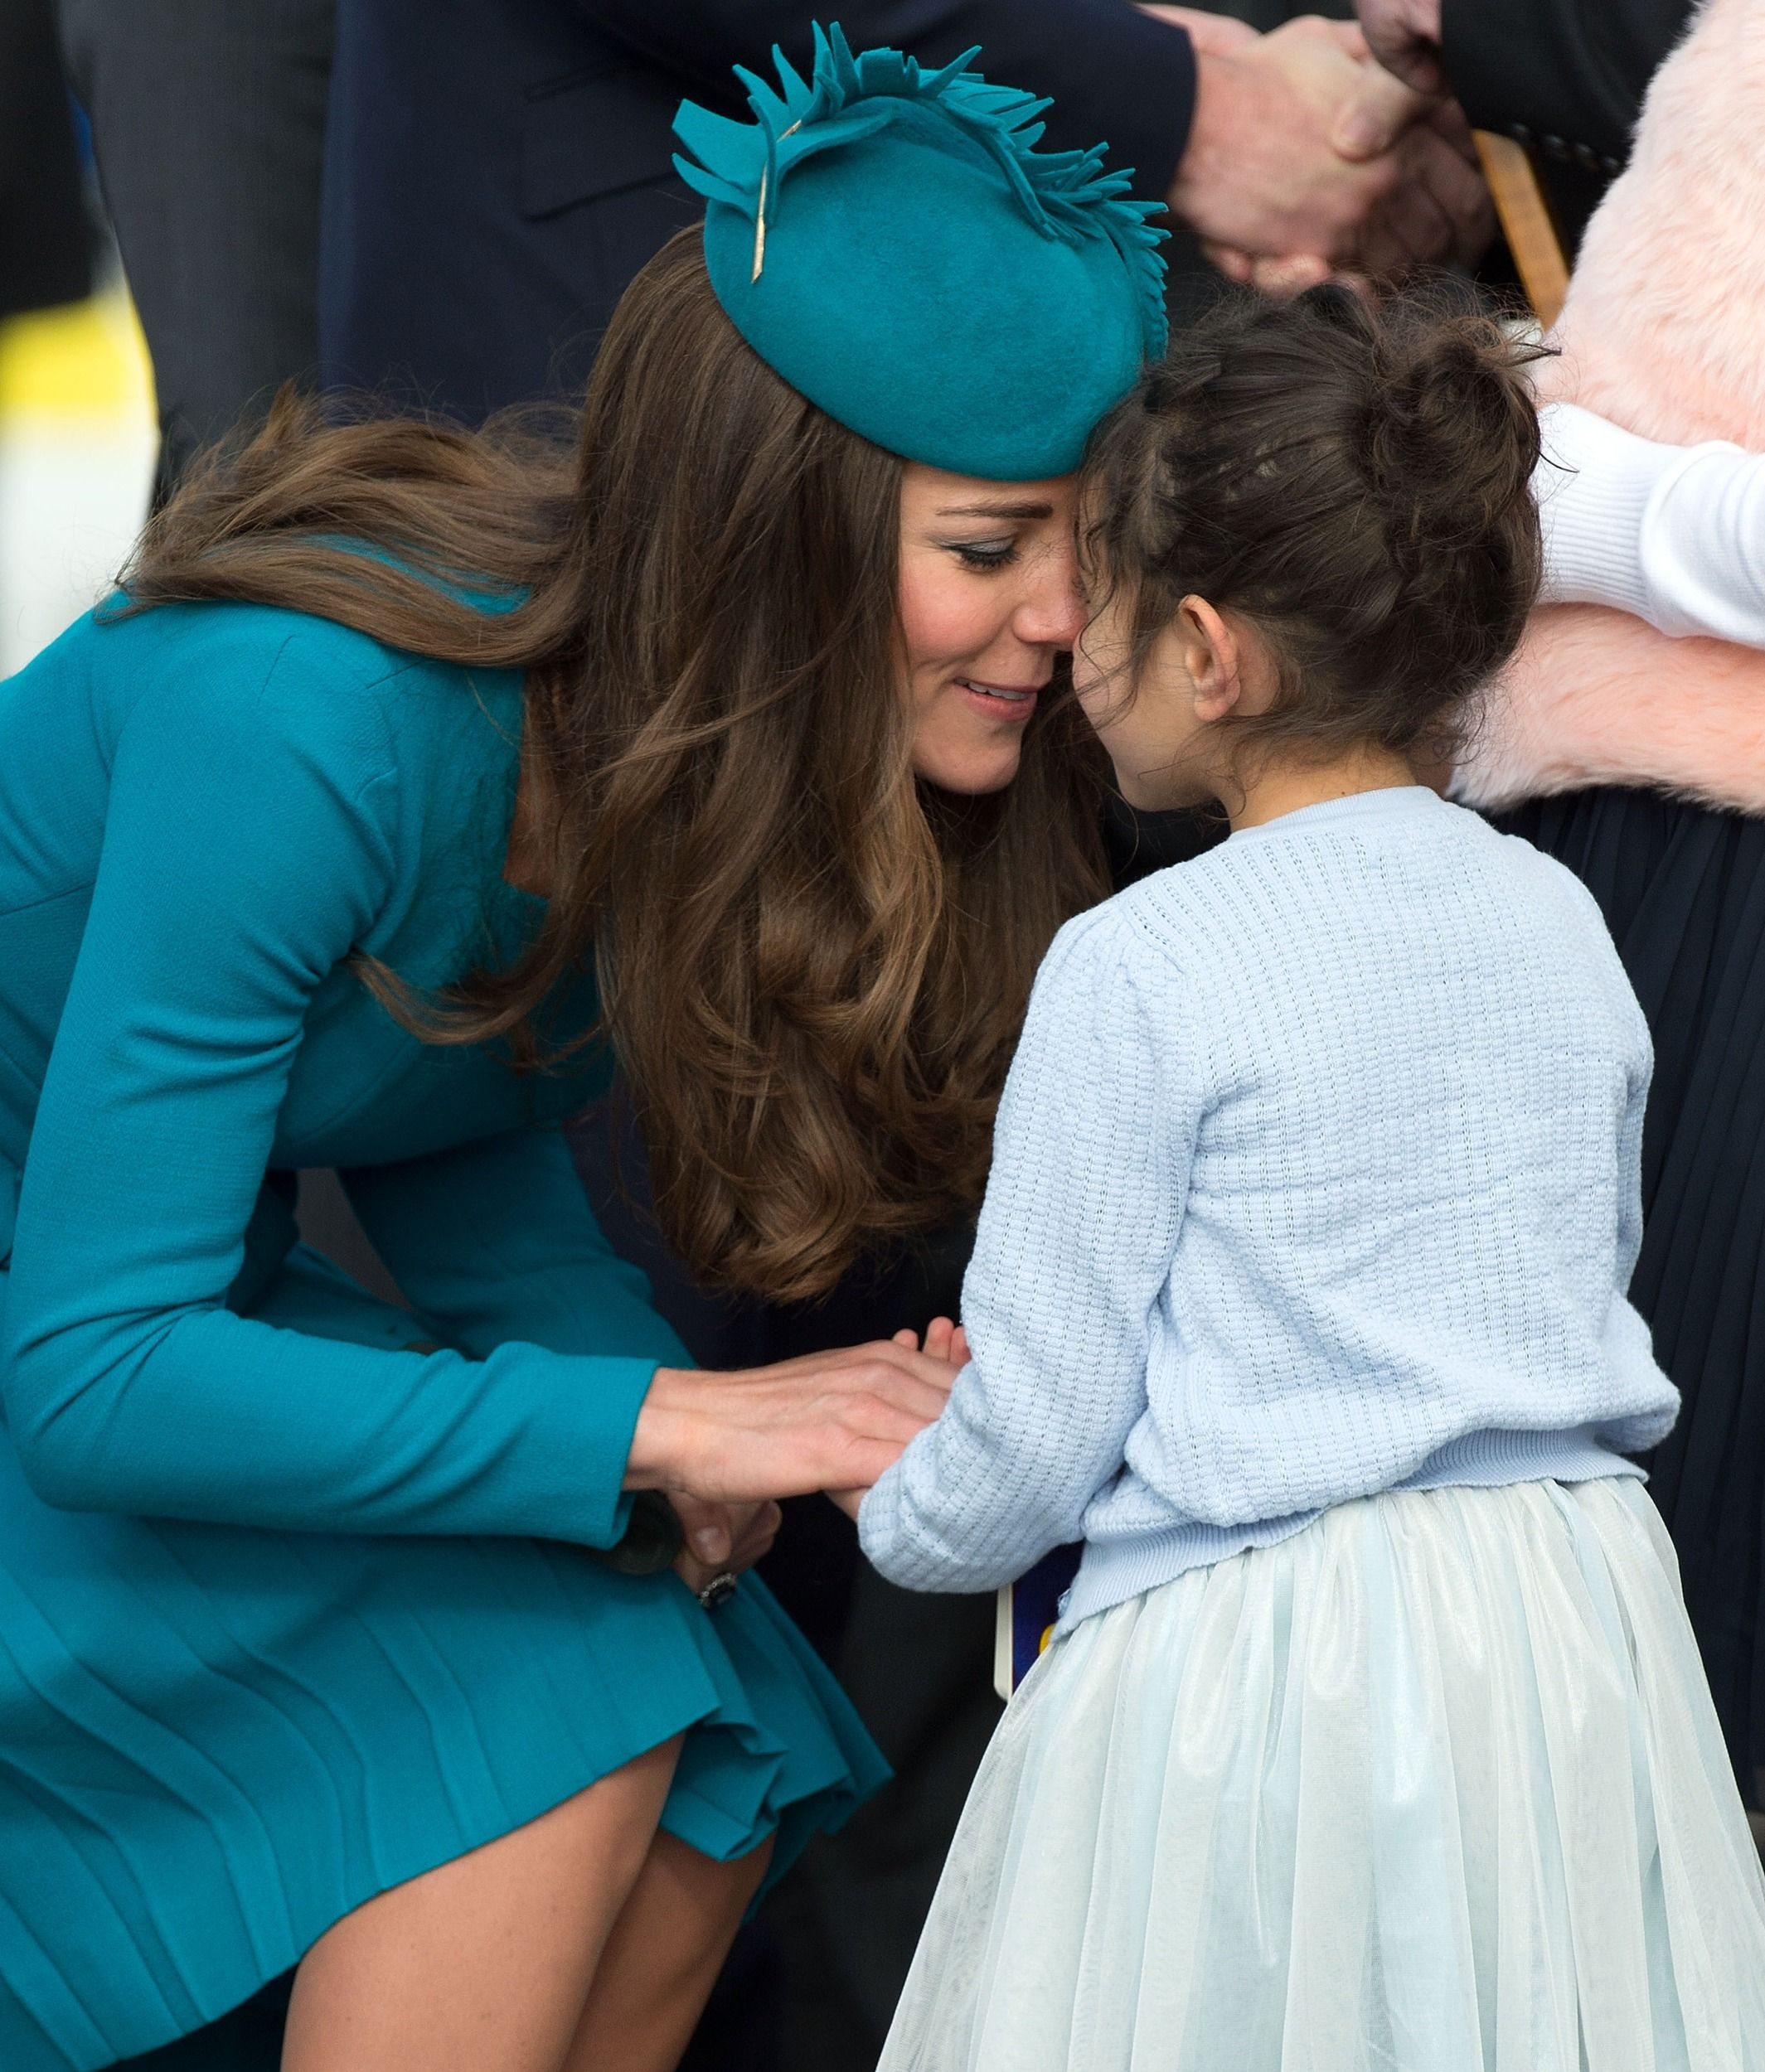 The traditional greeting, nose-to-nose after Kate receives a gift for Prince George. via StyleList